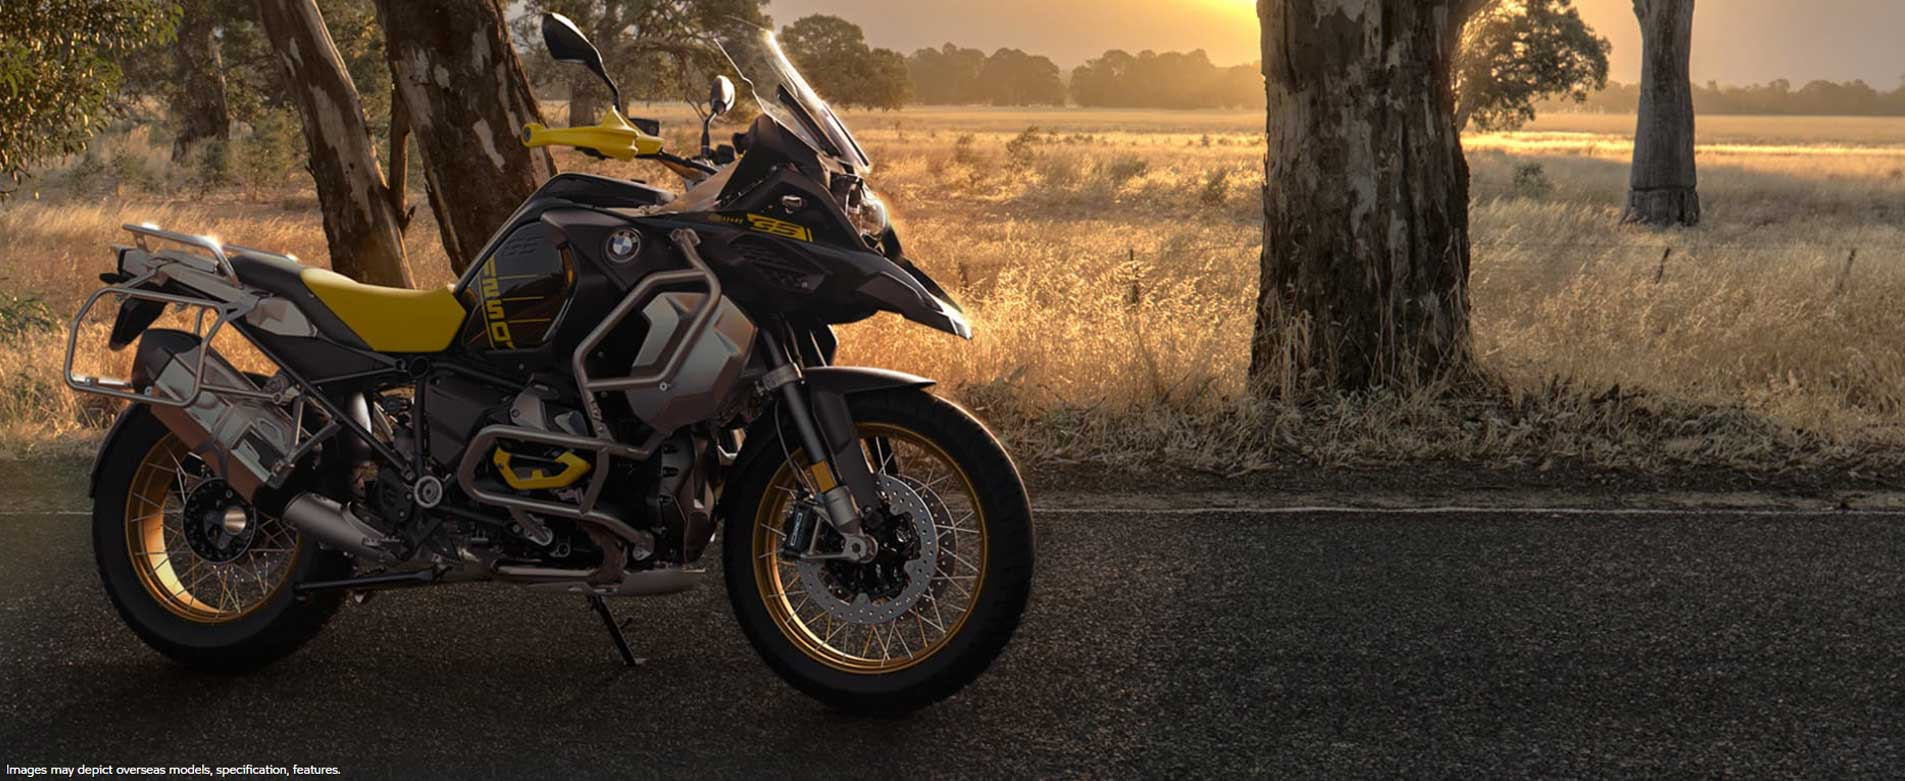 bmw-motorrad-r-1250-gs-adventure-edition-40-years-gs